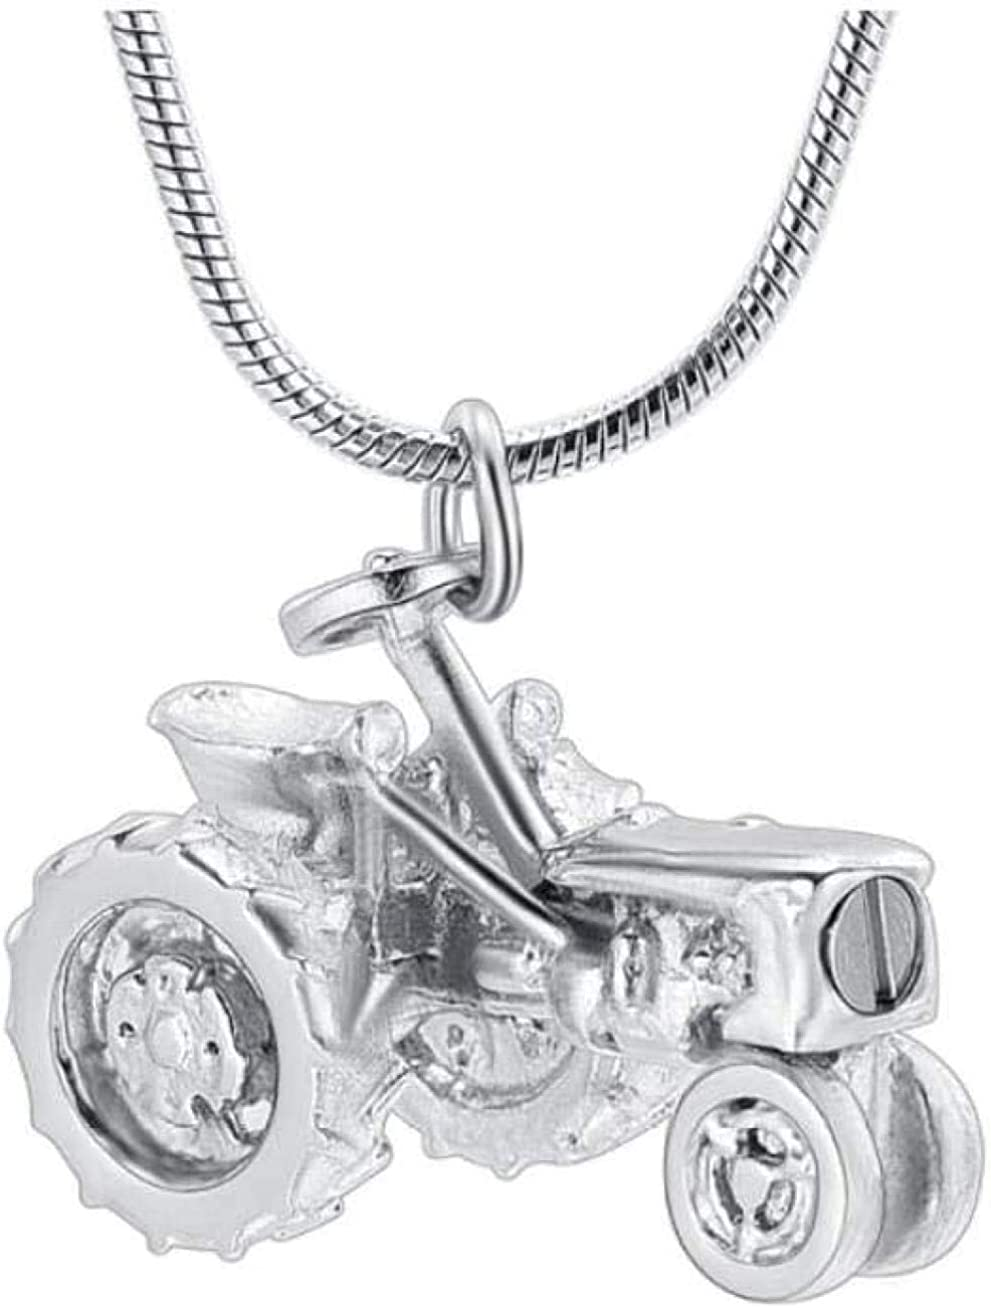 AEGW Cremation Urn Necklace Memorial Jewelry Memorial Necklace Cremation Jewelry Tractor Farm Ashes Necklace for Farmer Stainless Steel Tractor Souvenir